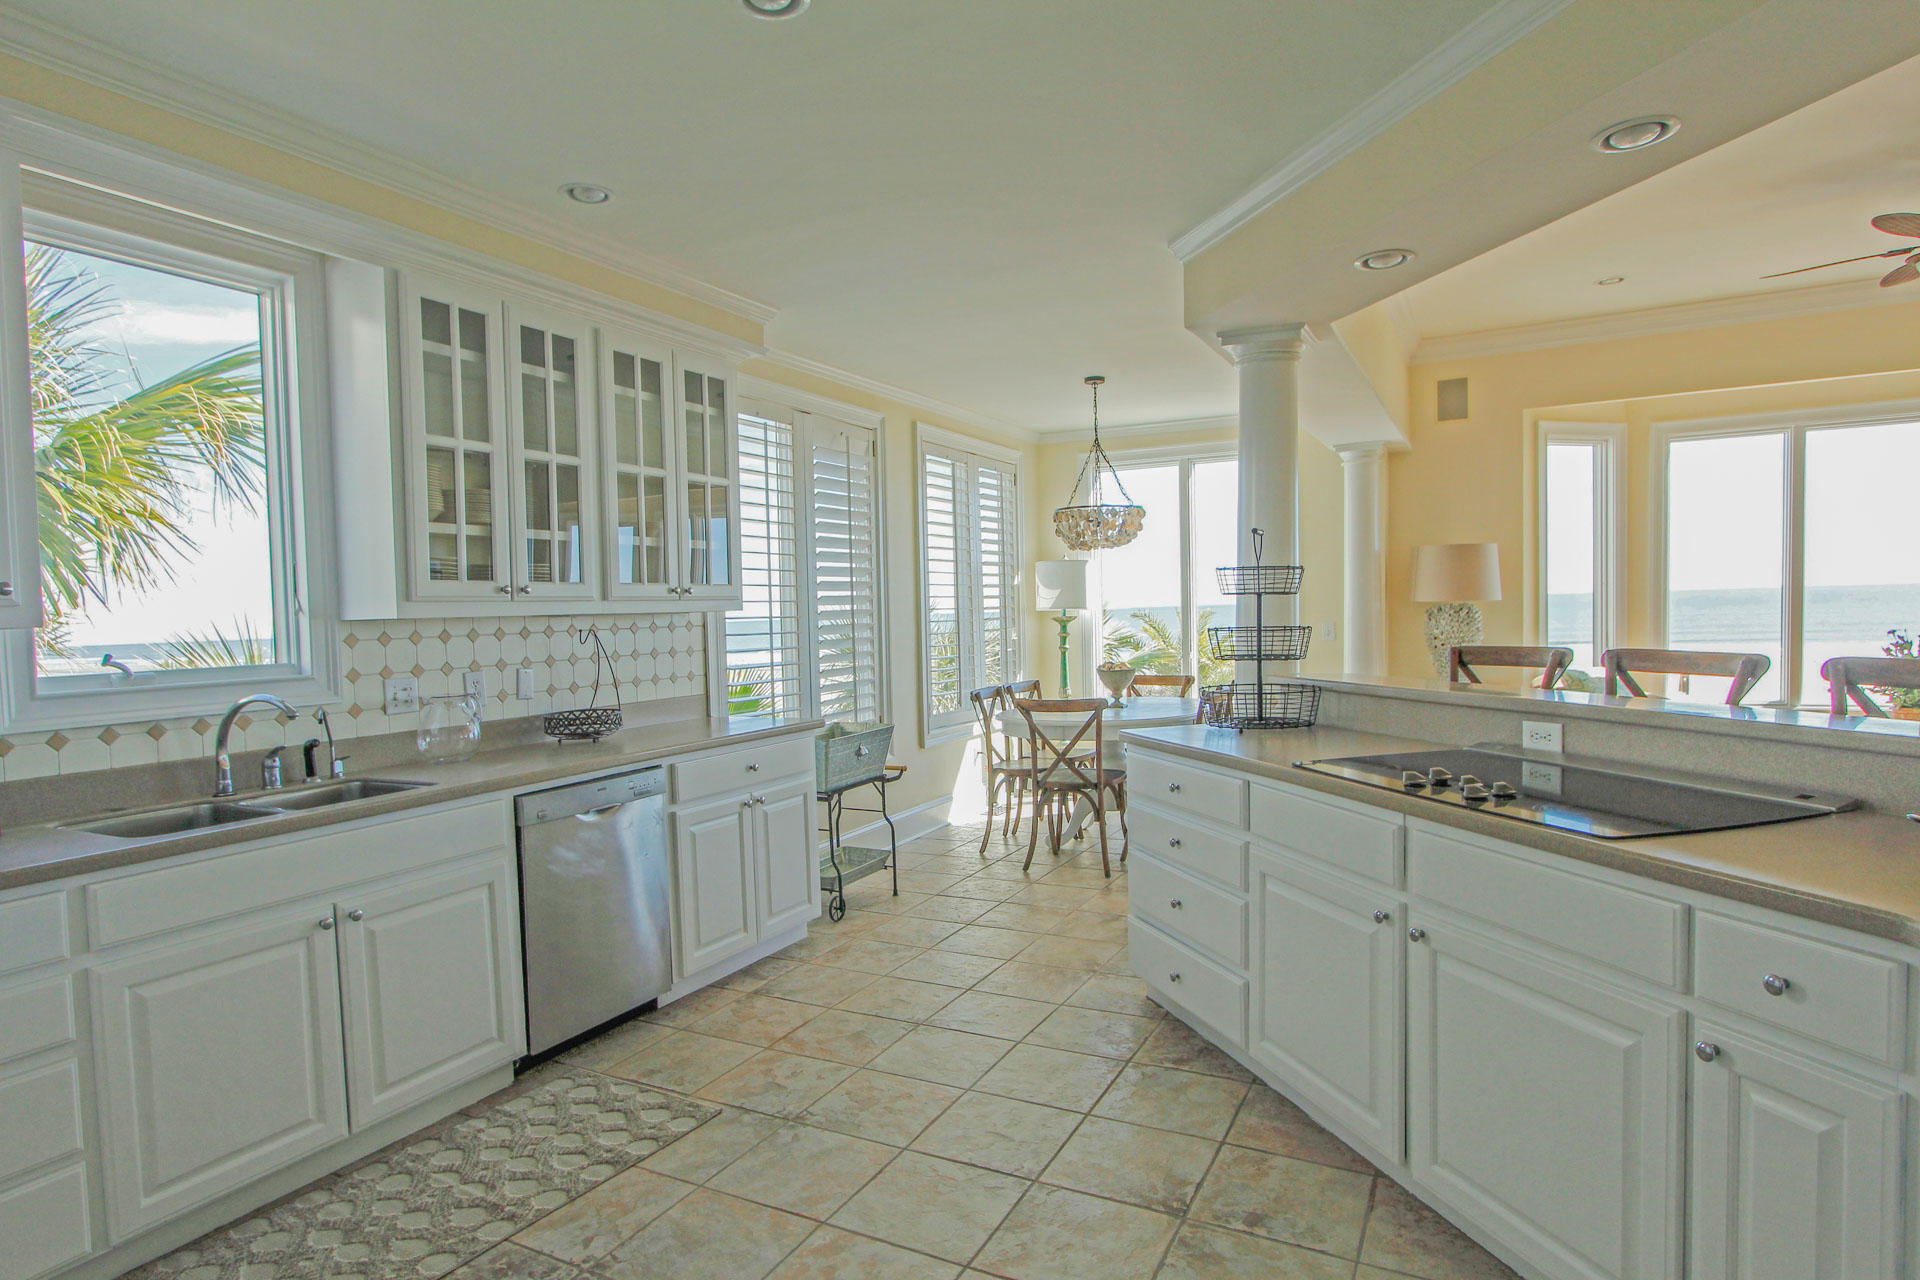 Isle of Palms Homes For Sale - 810 Ocean, Isle of Palms, SC - 20